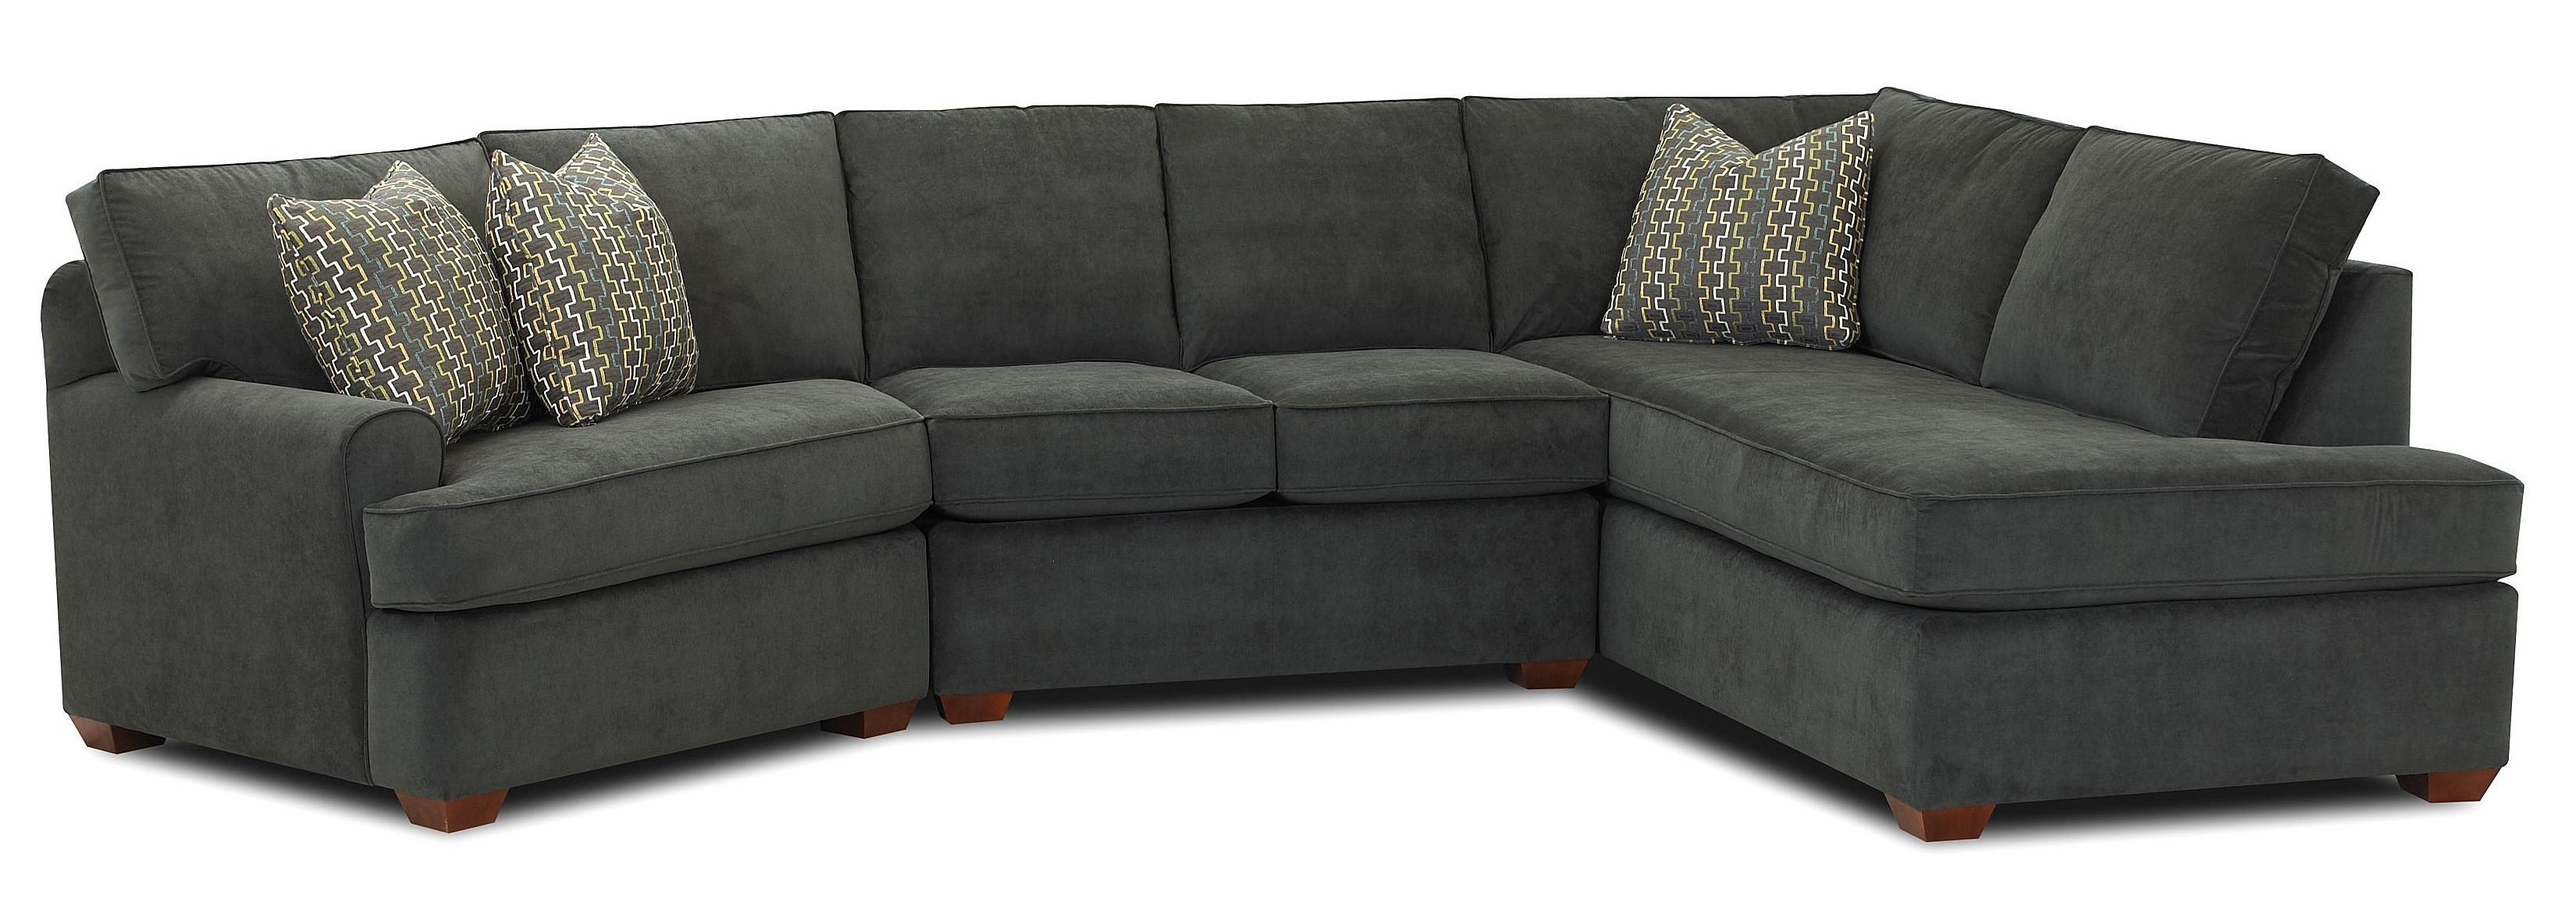 Preferred Sectional Sofa With Left Facing Sofa Chaiseklaussner (View 10 of 15)